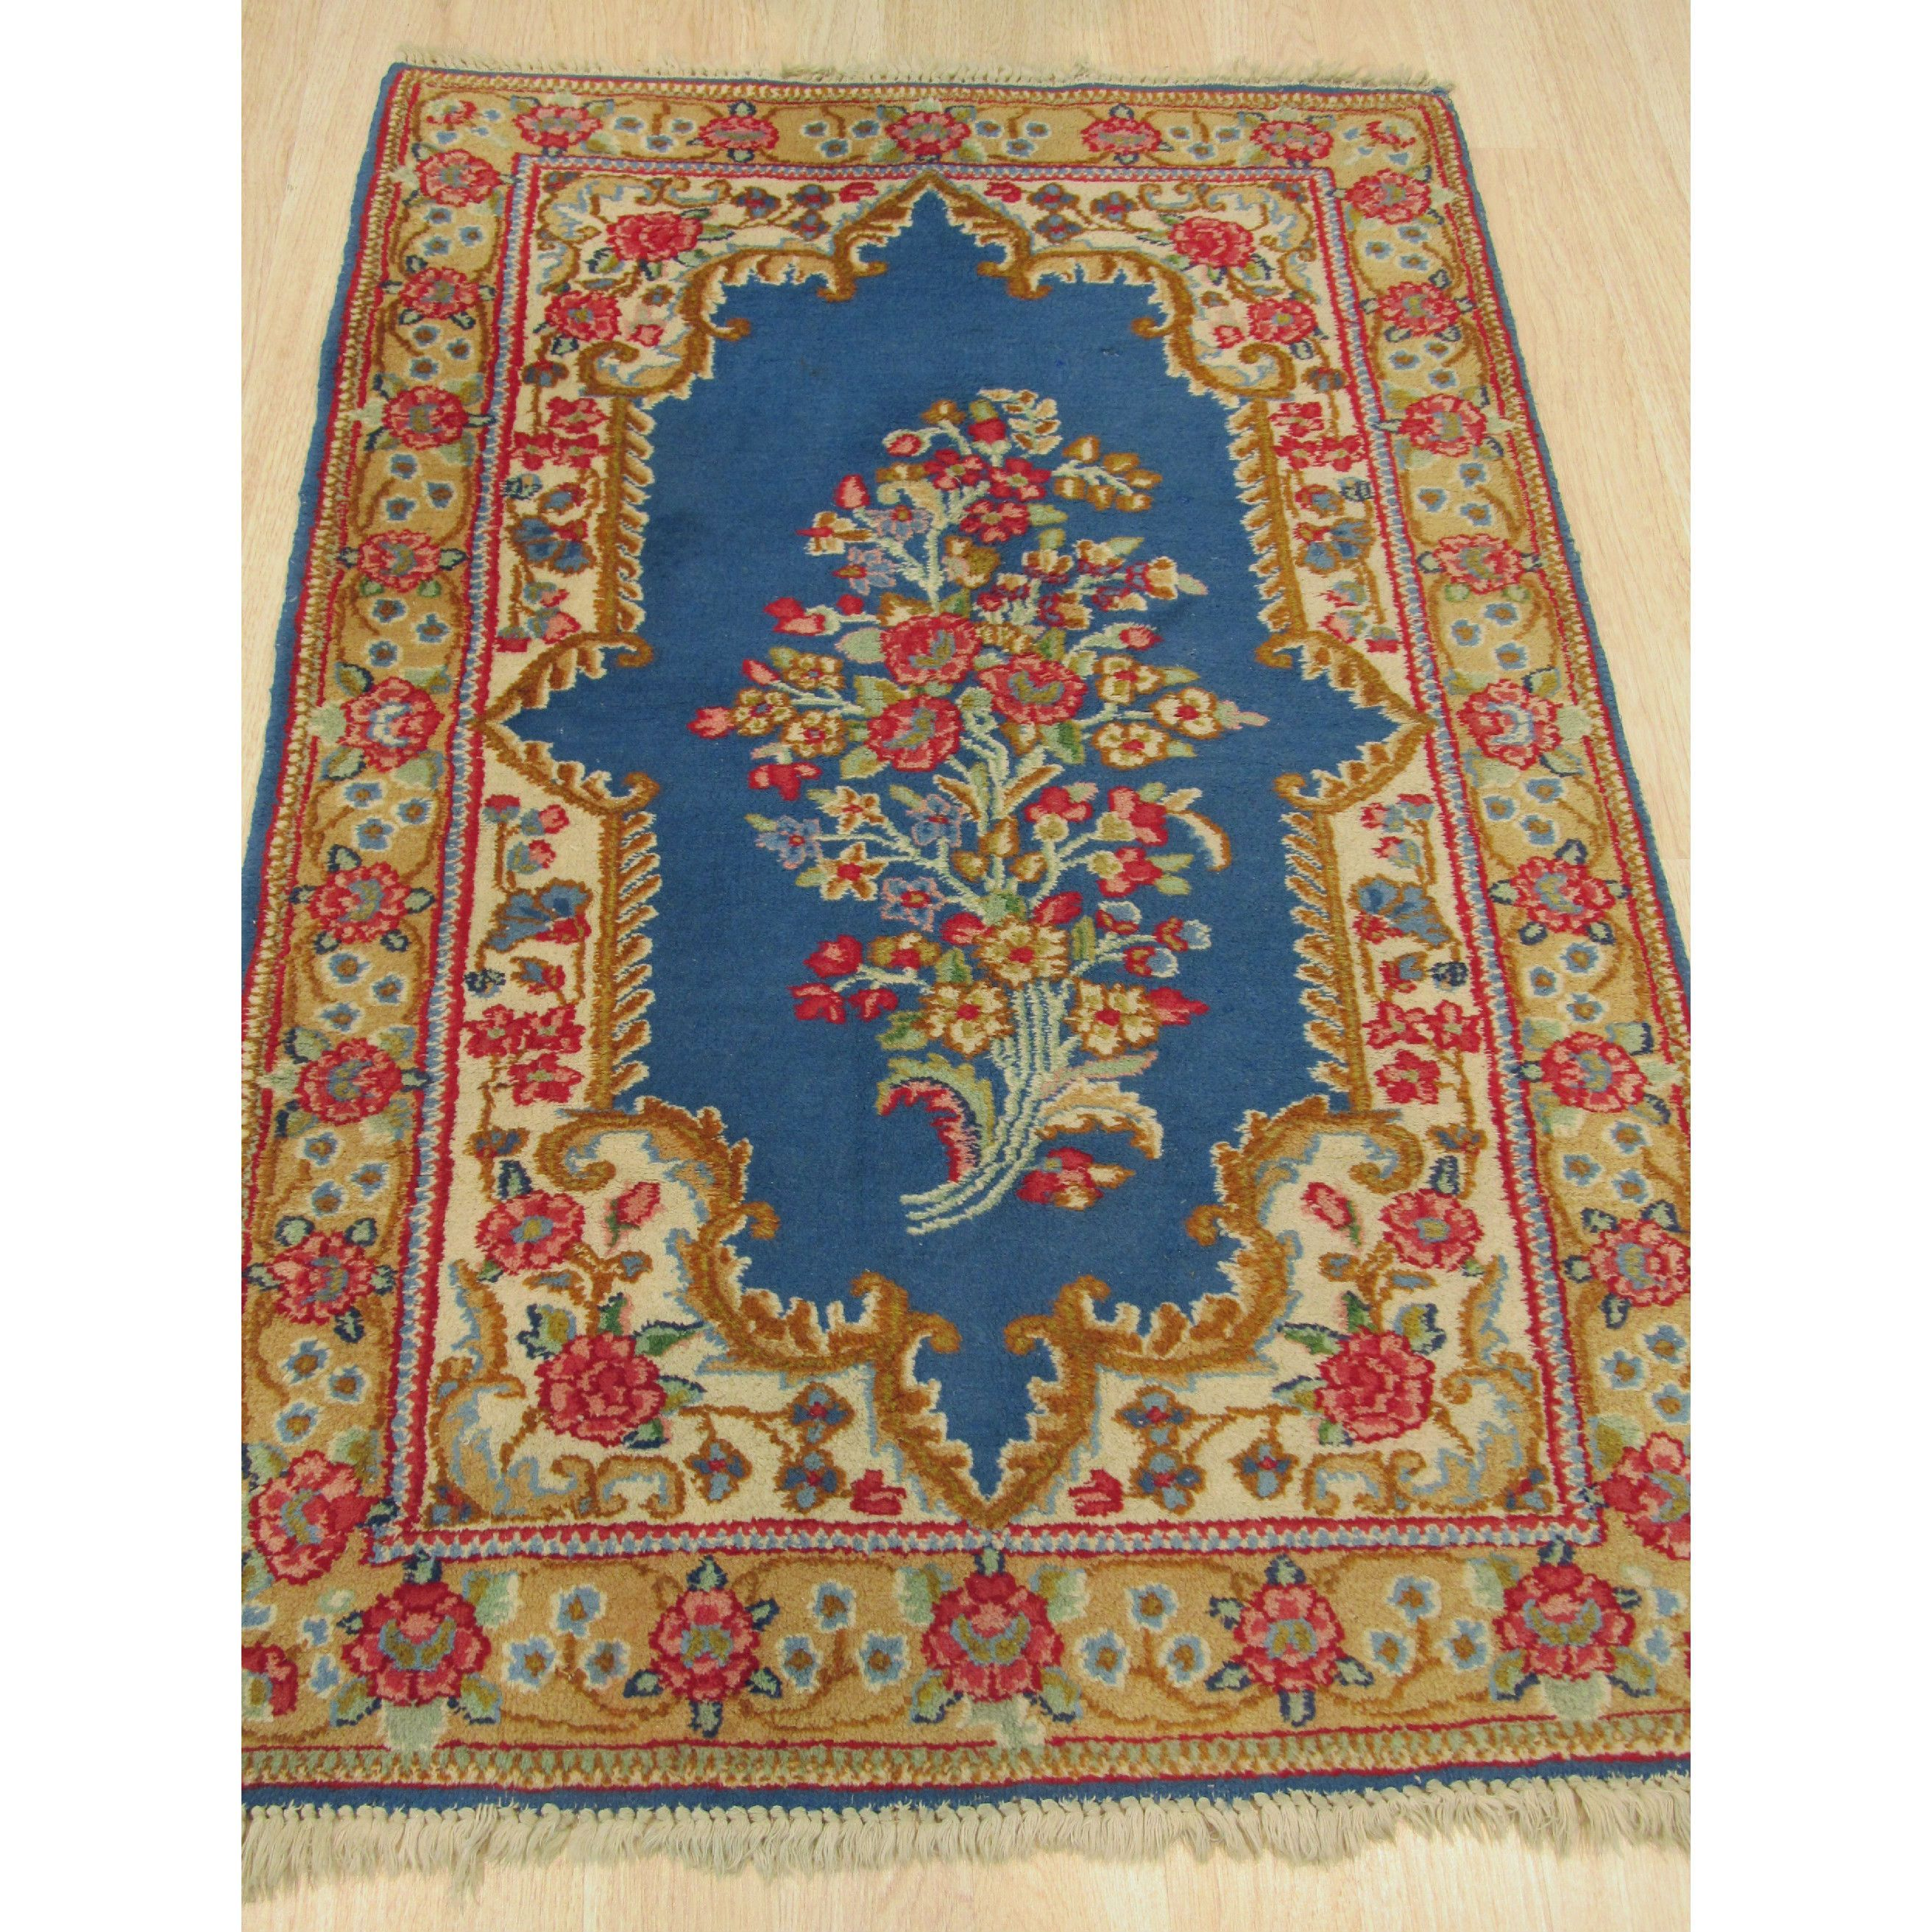 Refurbished Eorc YZ397 Kerman Blue Wool Hand-knotted Rug (3'2 x 4'10) (3'2 x 4'10), Size 3' x 5'